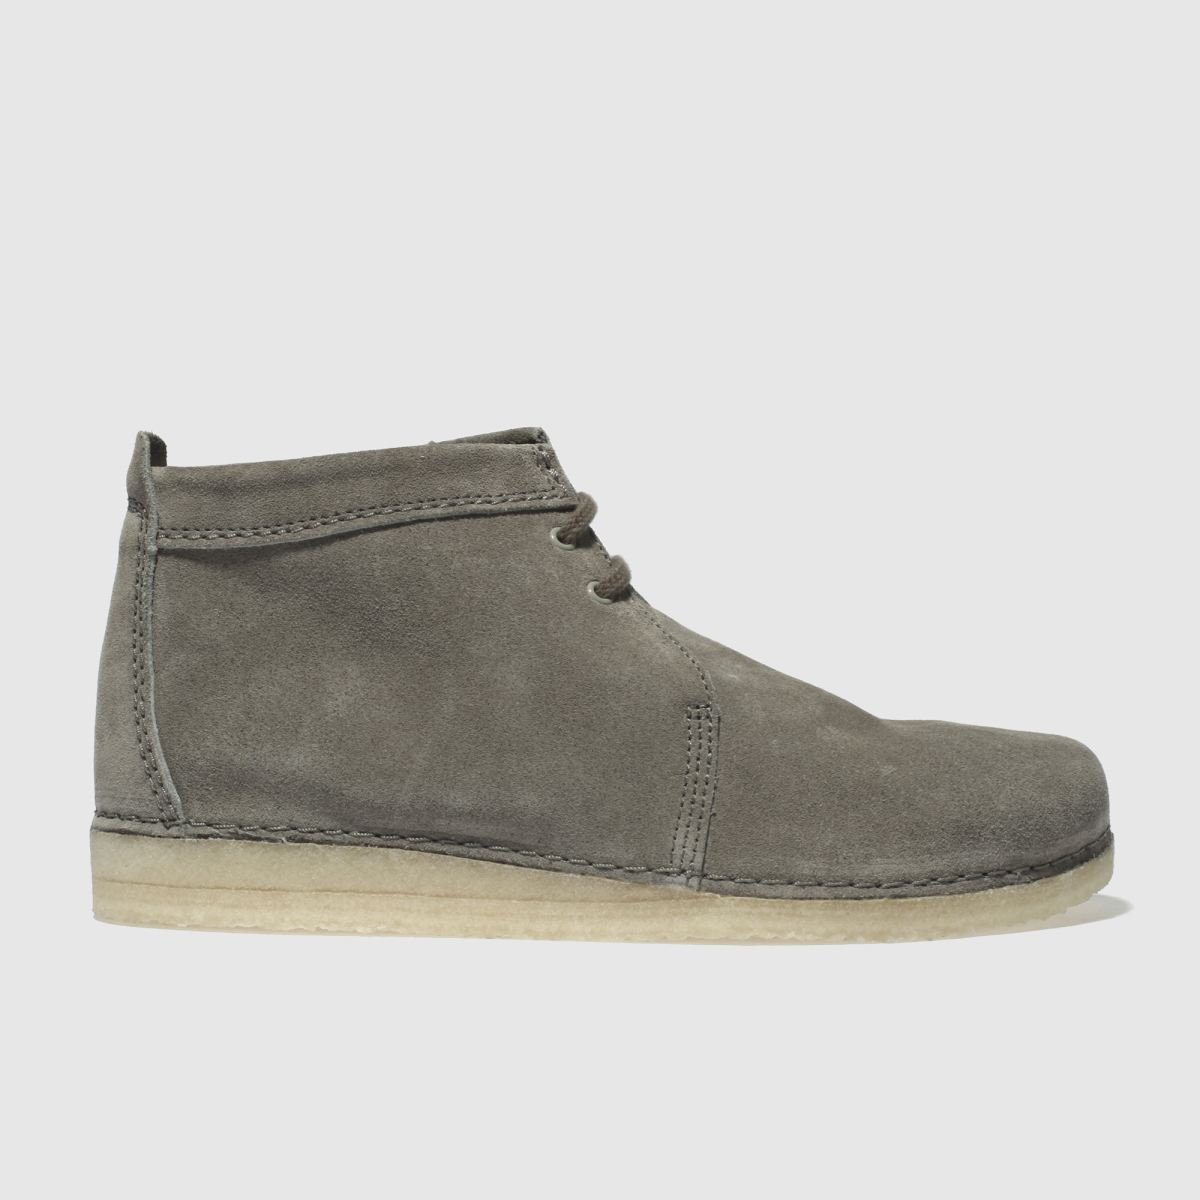 Clarks Originals Grey Ashton Boot Boots